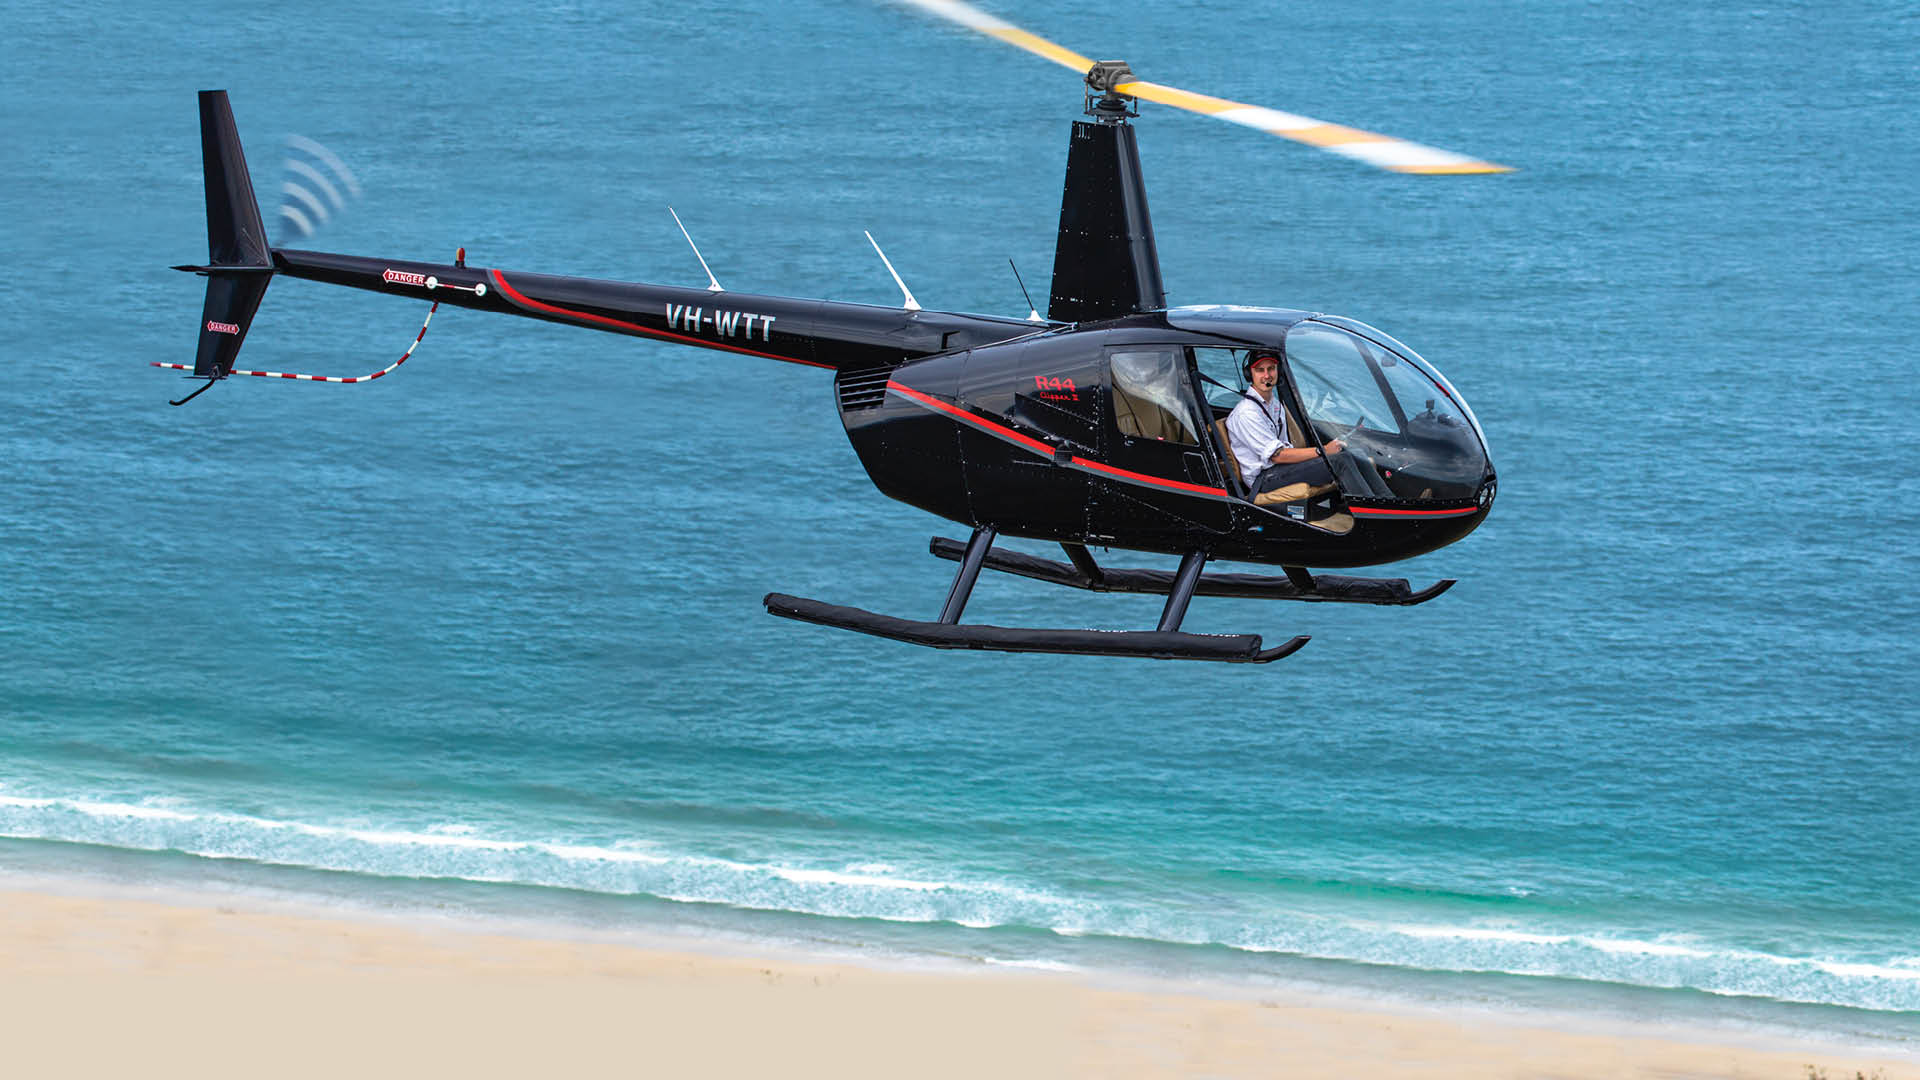 Morgan Vidler flying a helicopter over beach and water